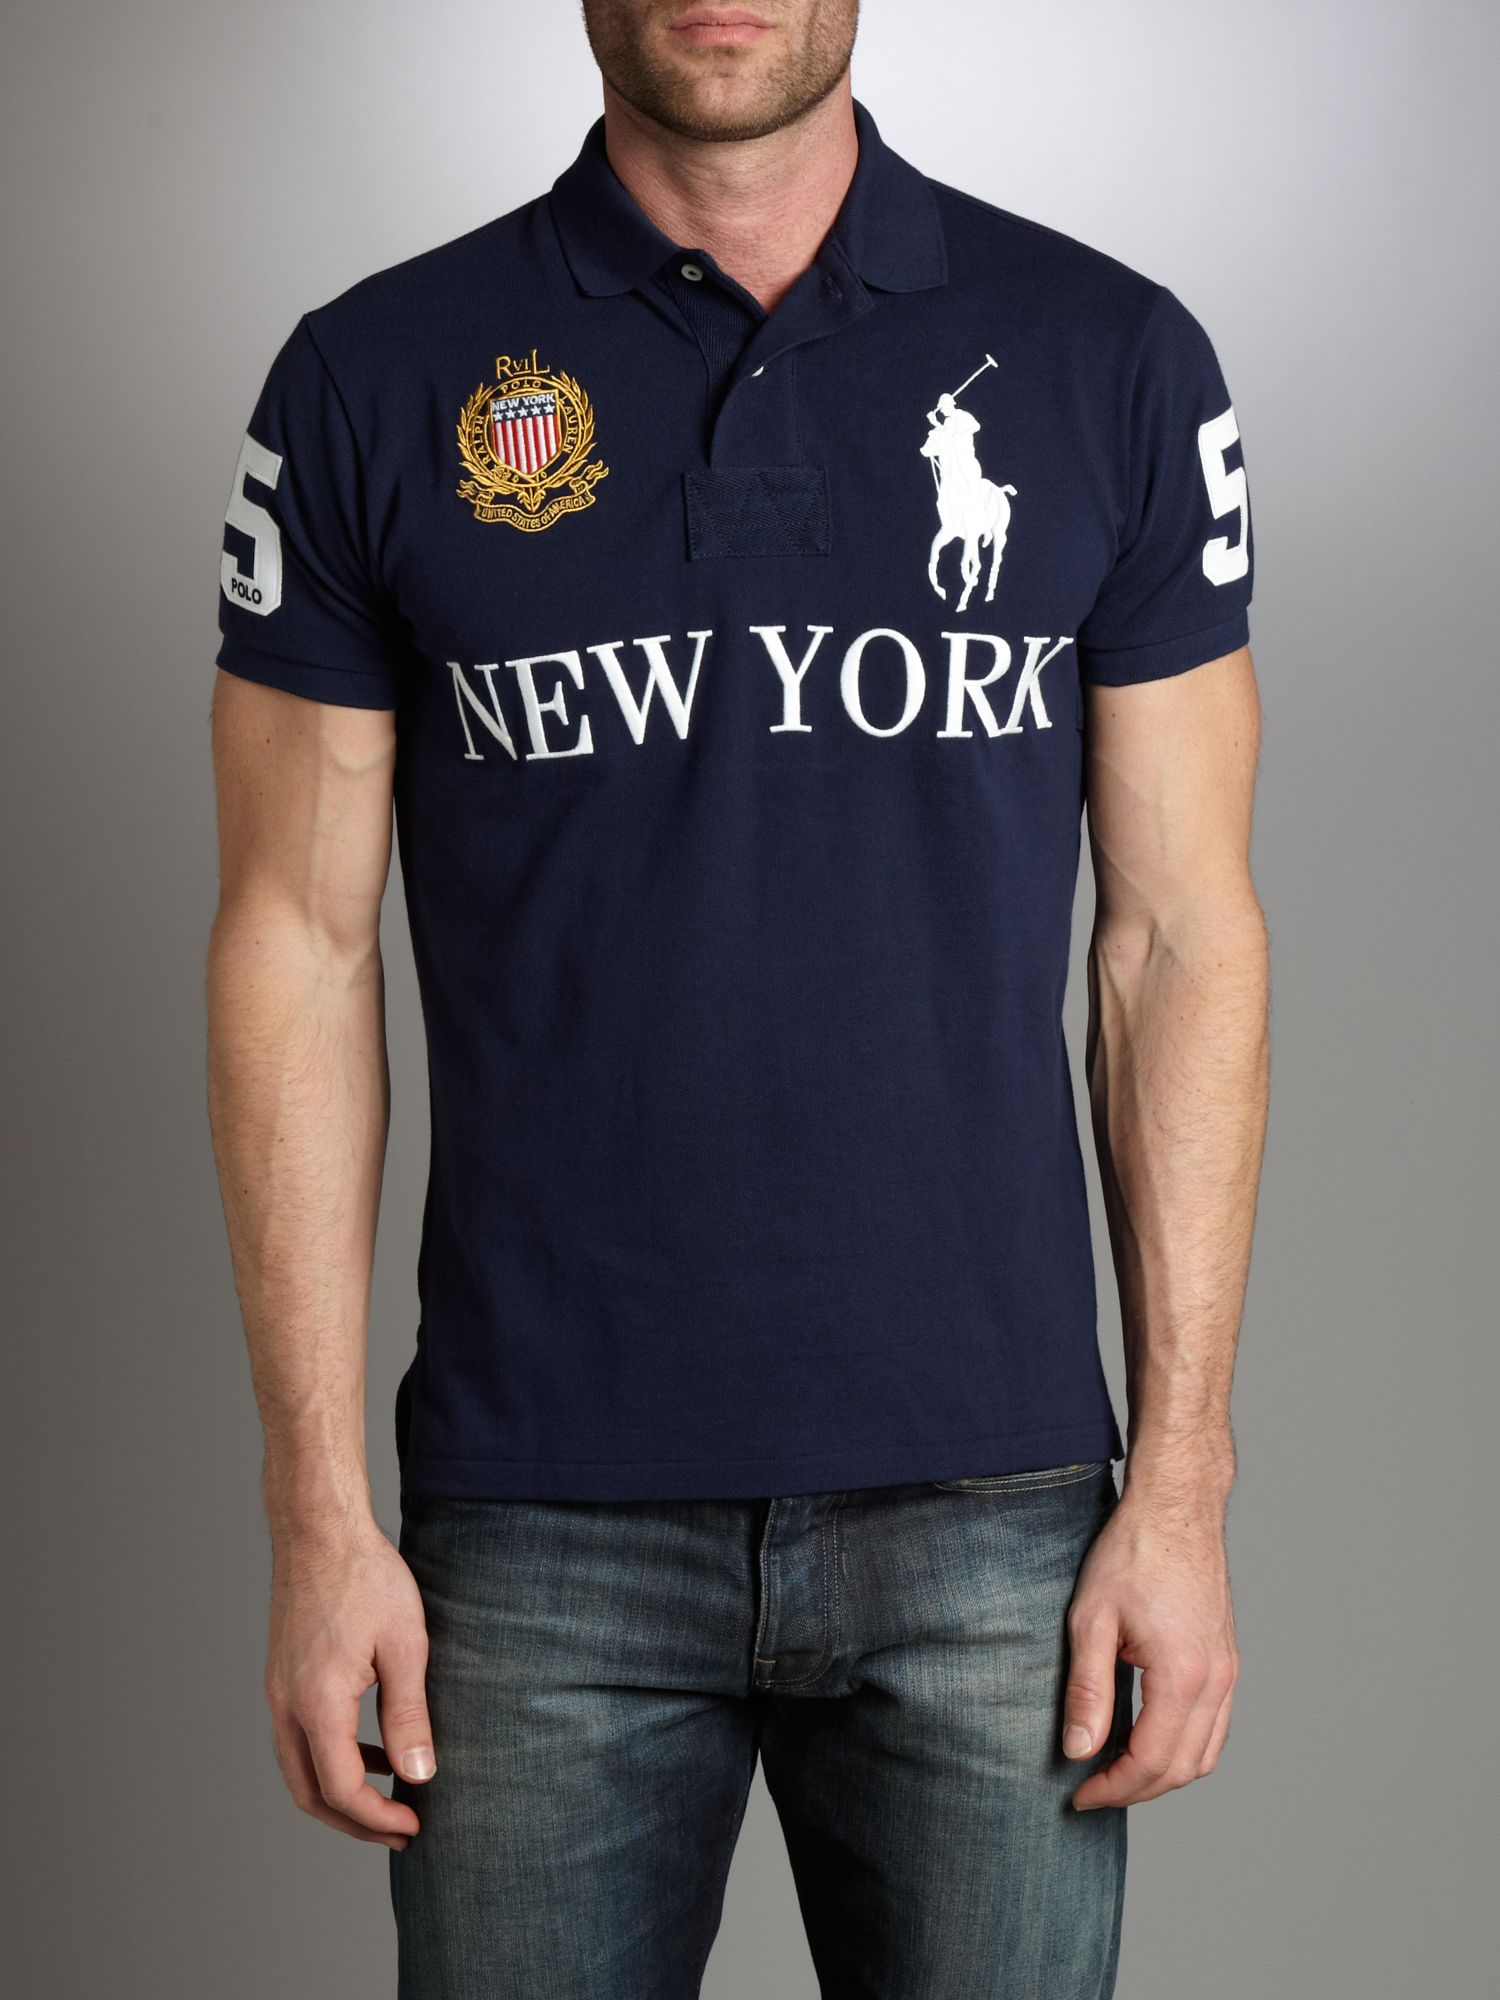 ralph lauren blue buy ralph lauren polo shirt